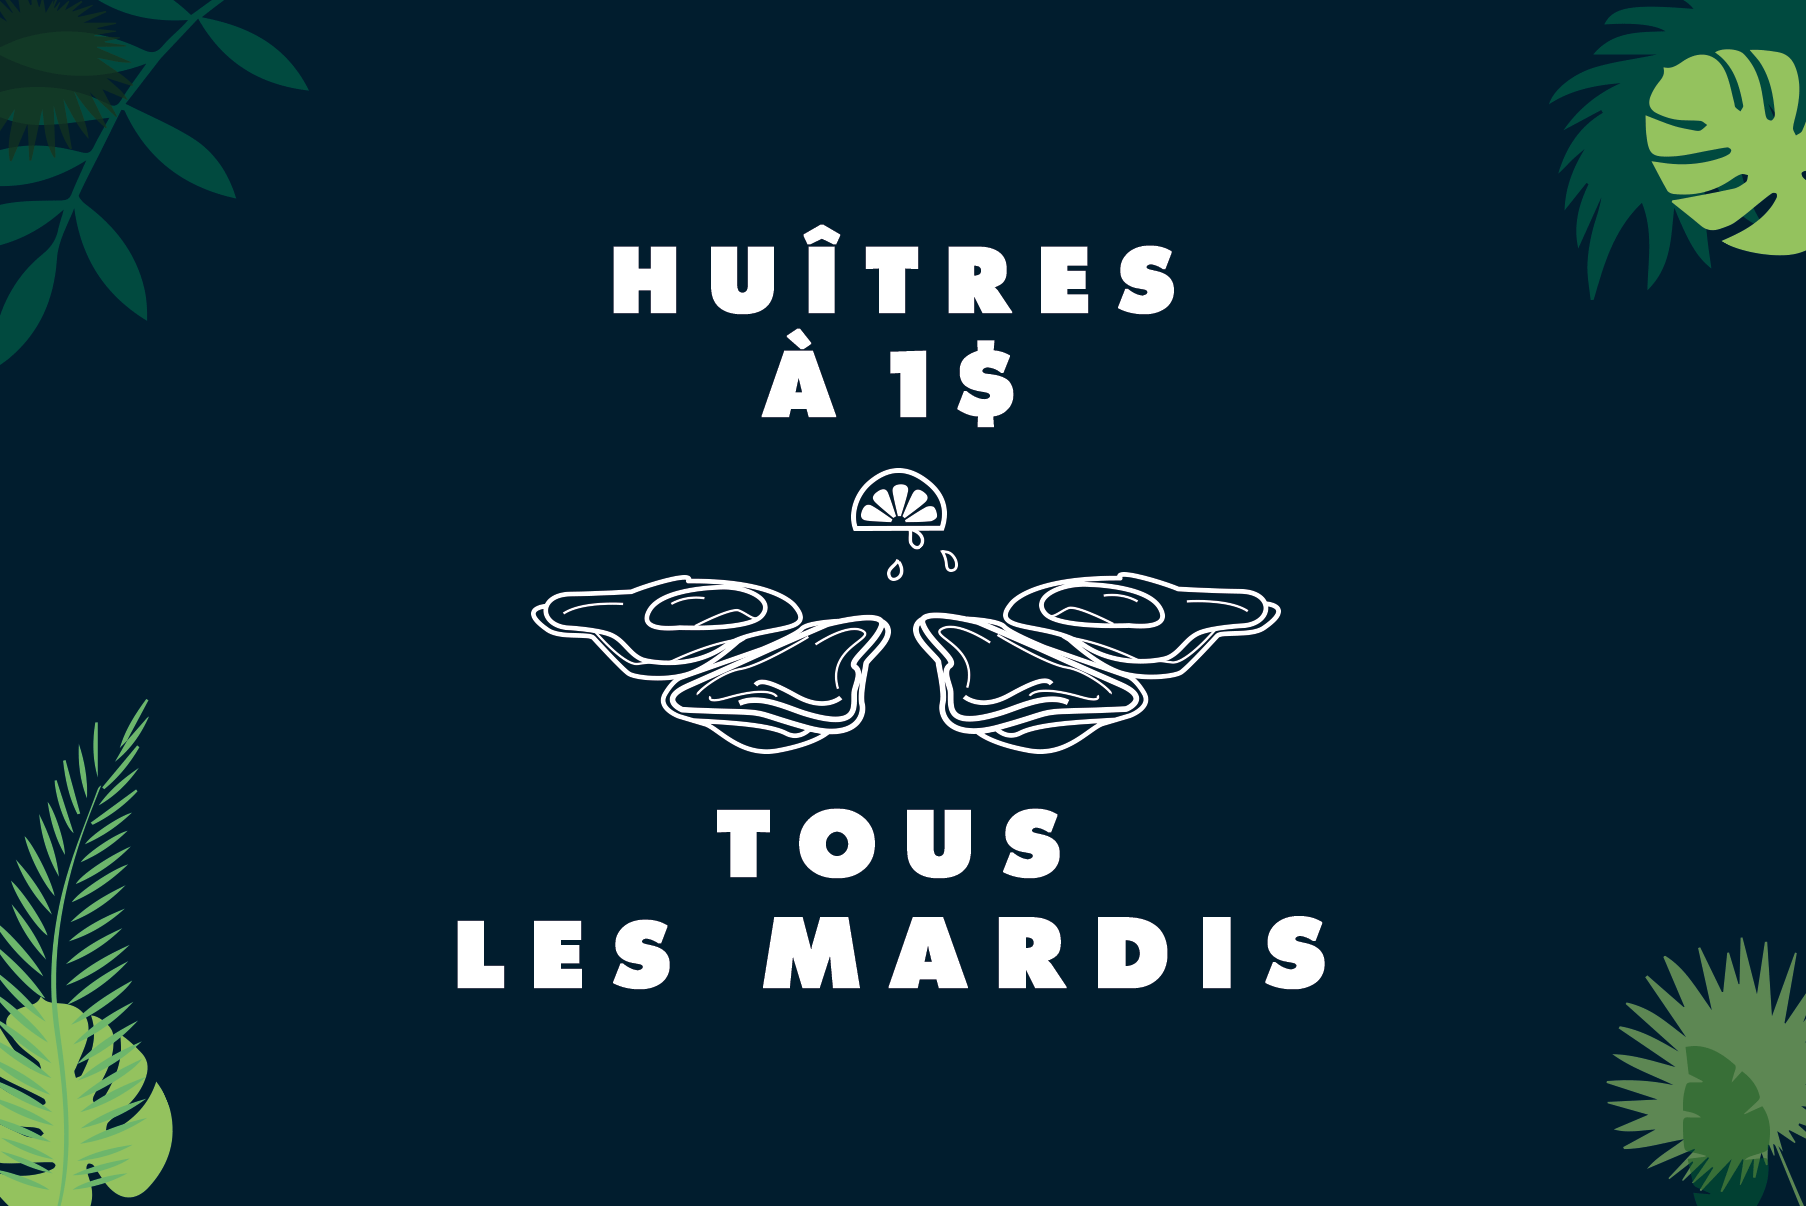 huitres-site-2017.png